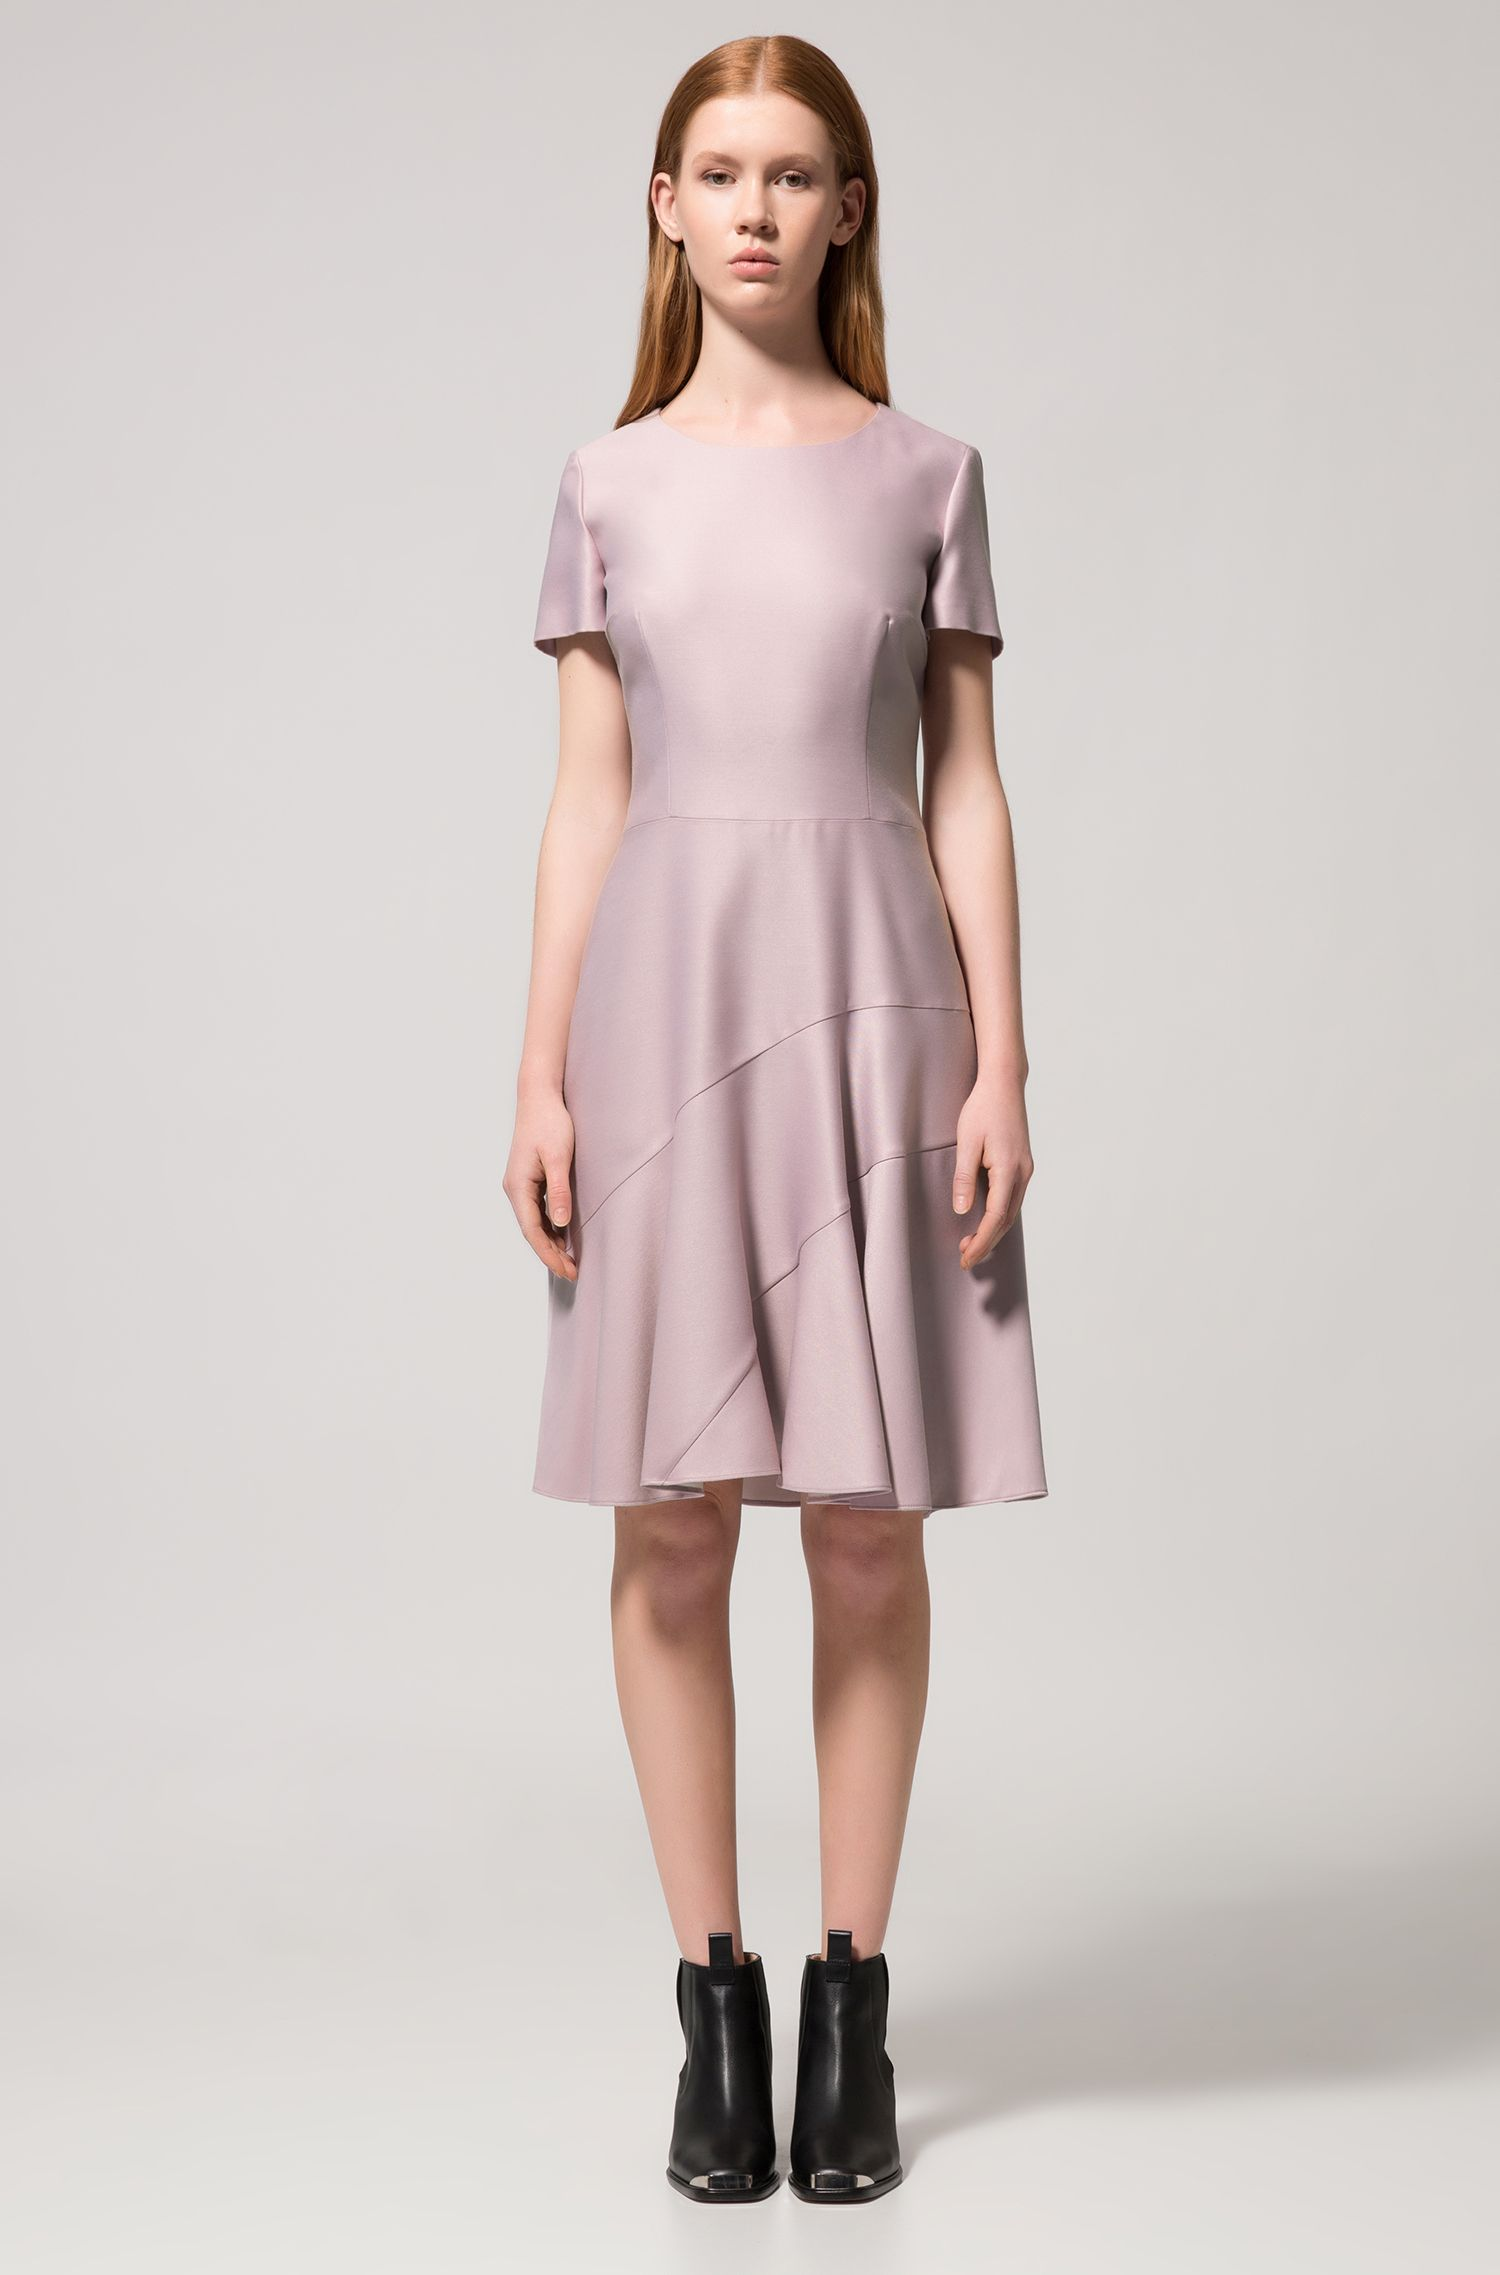 Stretch-fabric dress with panelled skirt, light pink